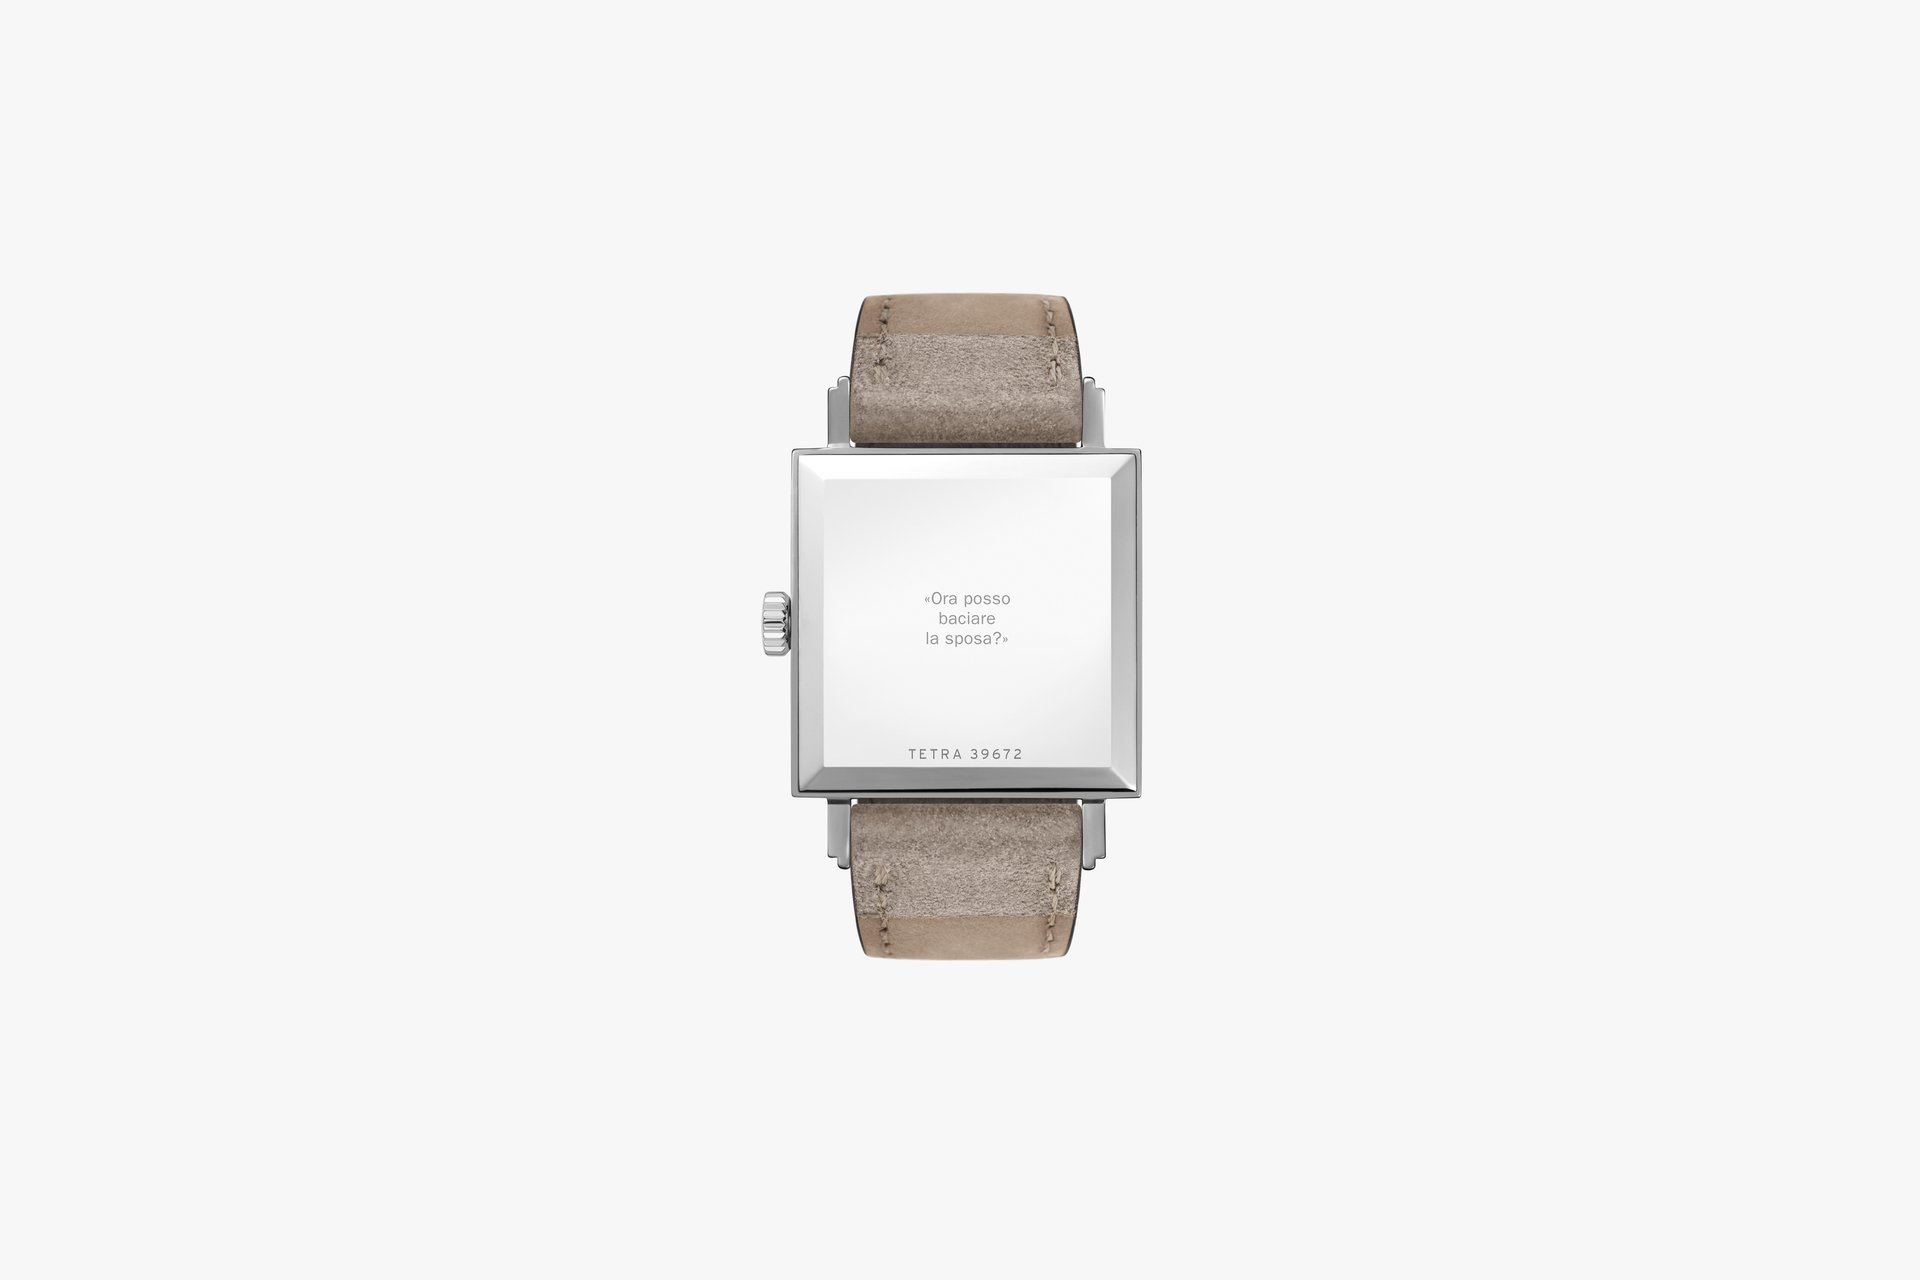 Nomos Tetra 27 Duo back with engravings